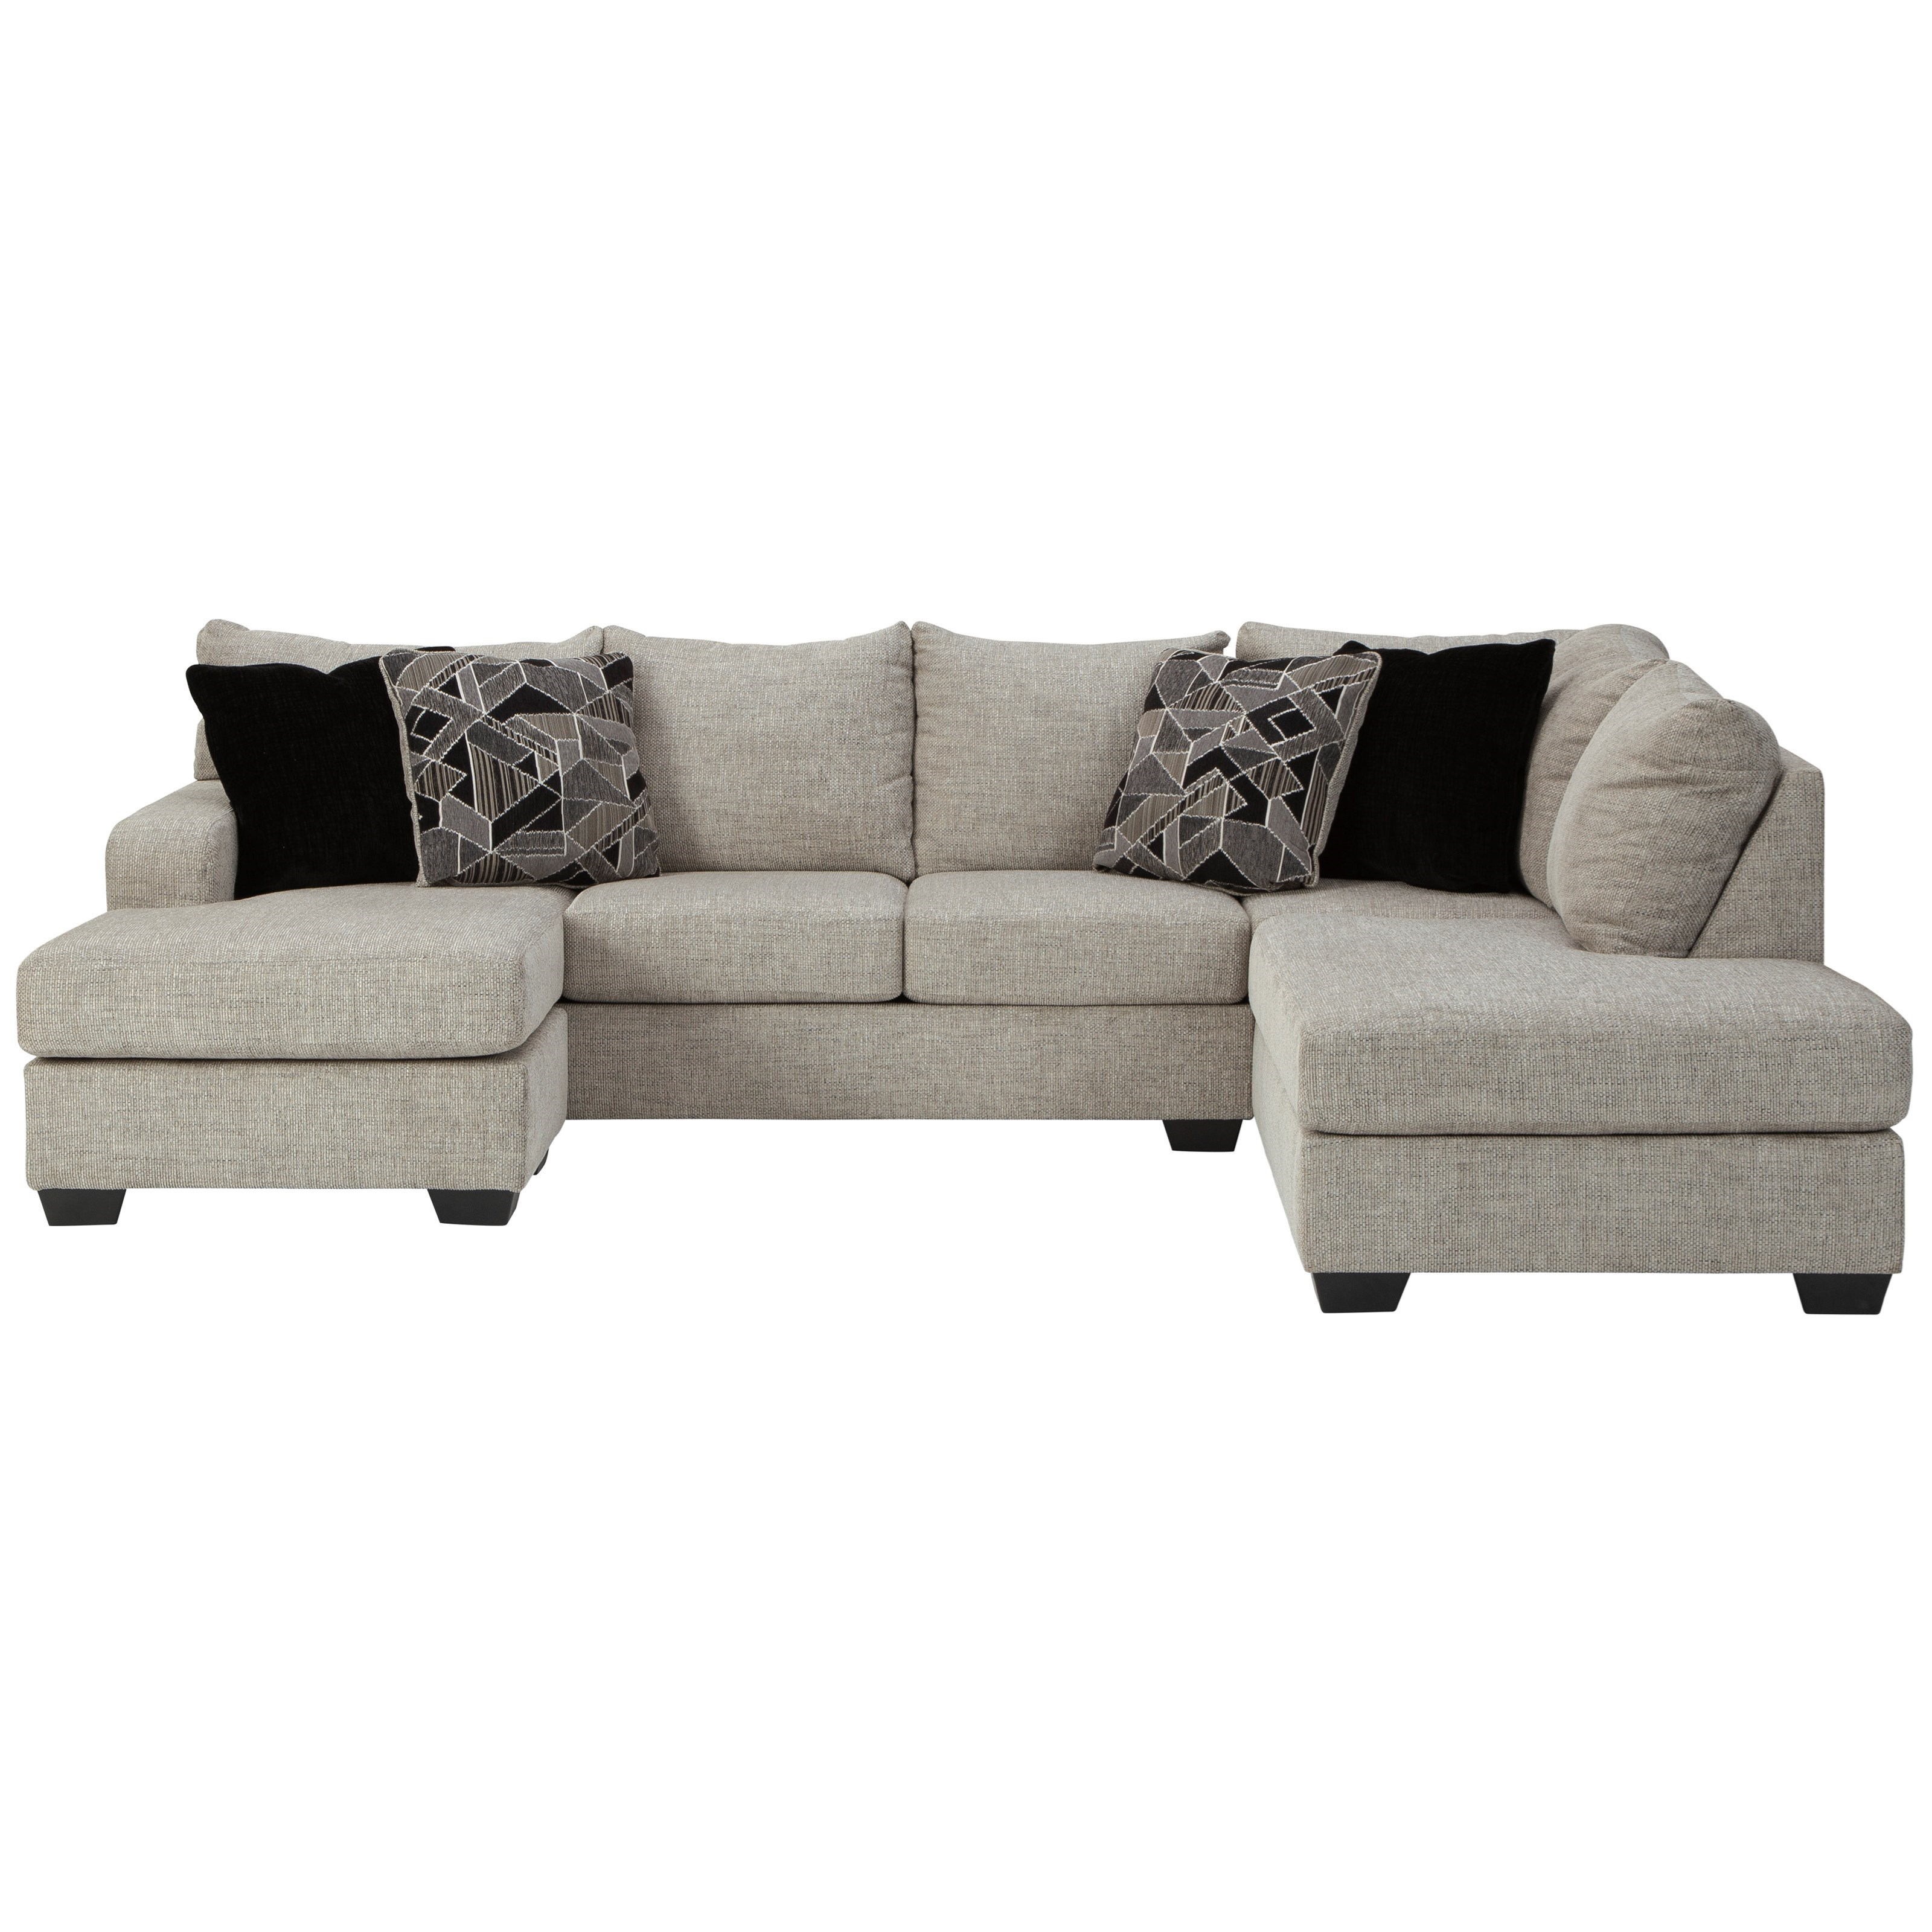 Megginson Sectional by Benchcraft at Beck's Furniture